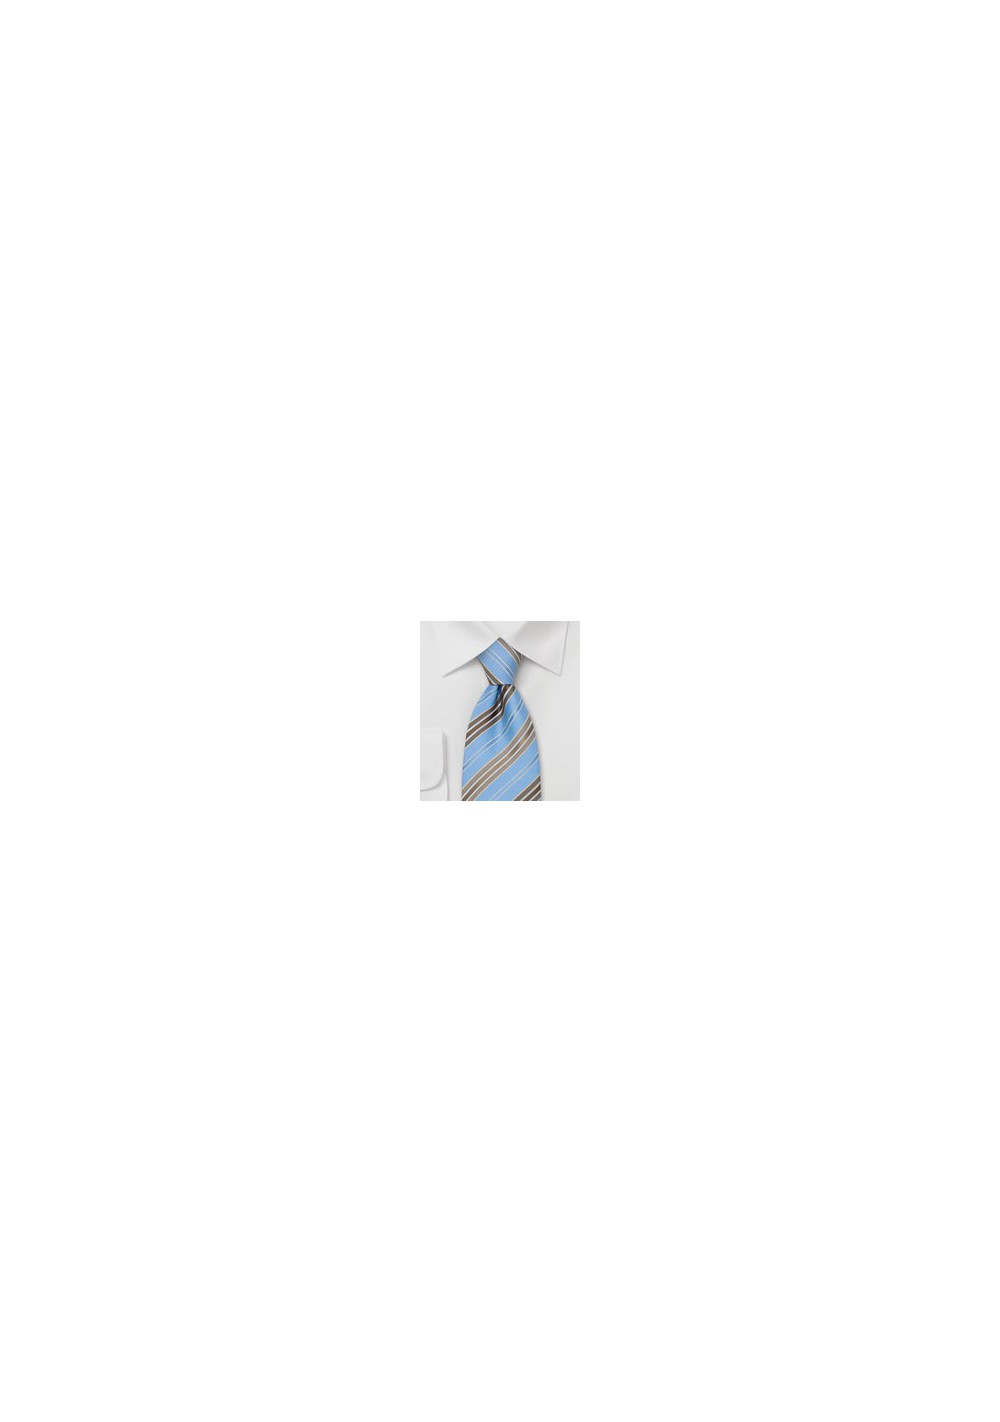 Blue and Brown Ties - Striped Necktie in Blue and Brown